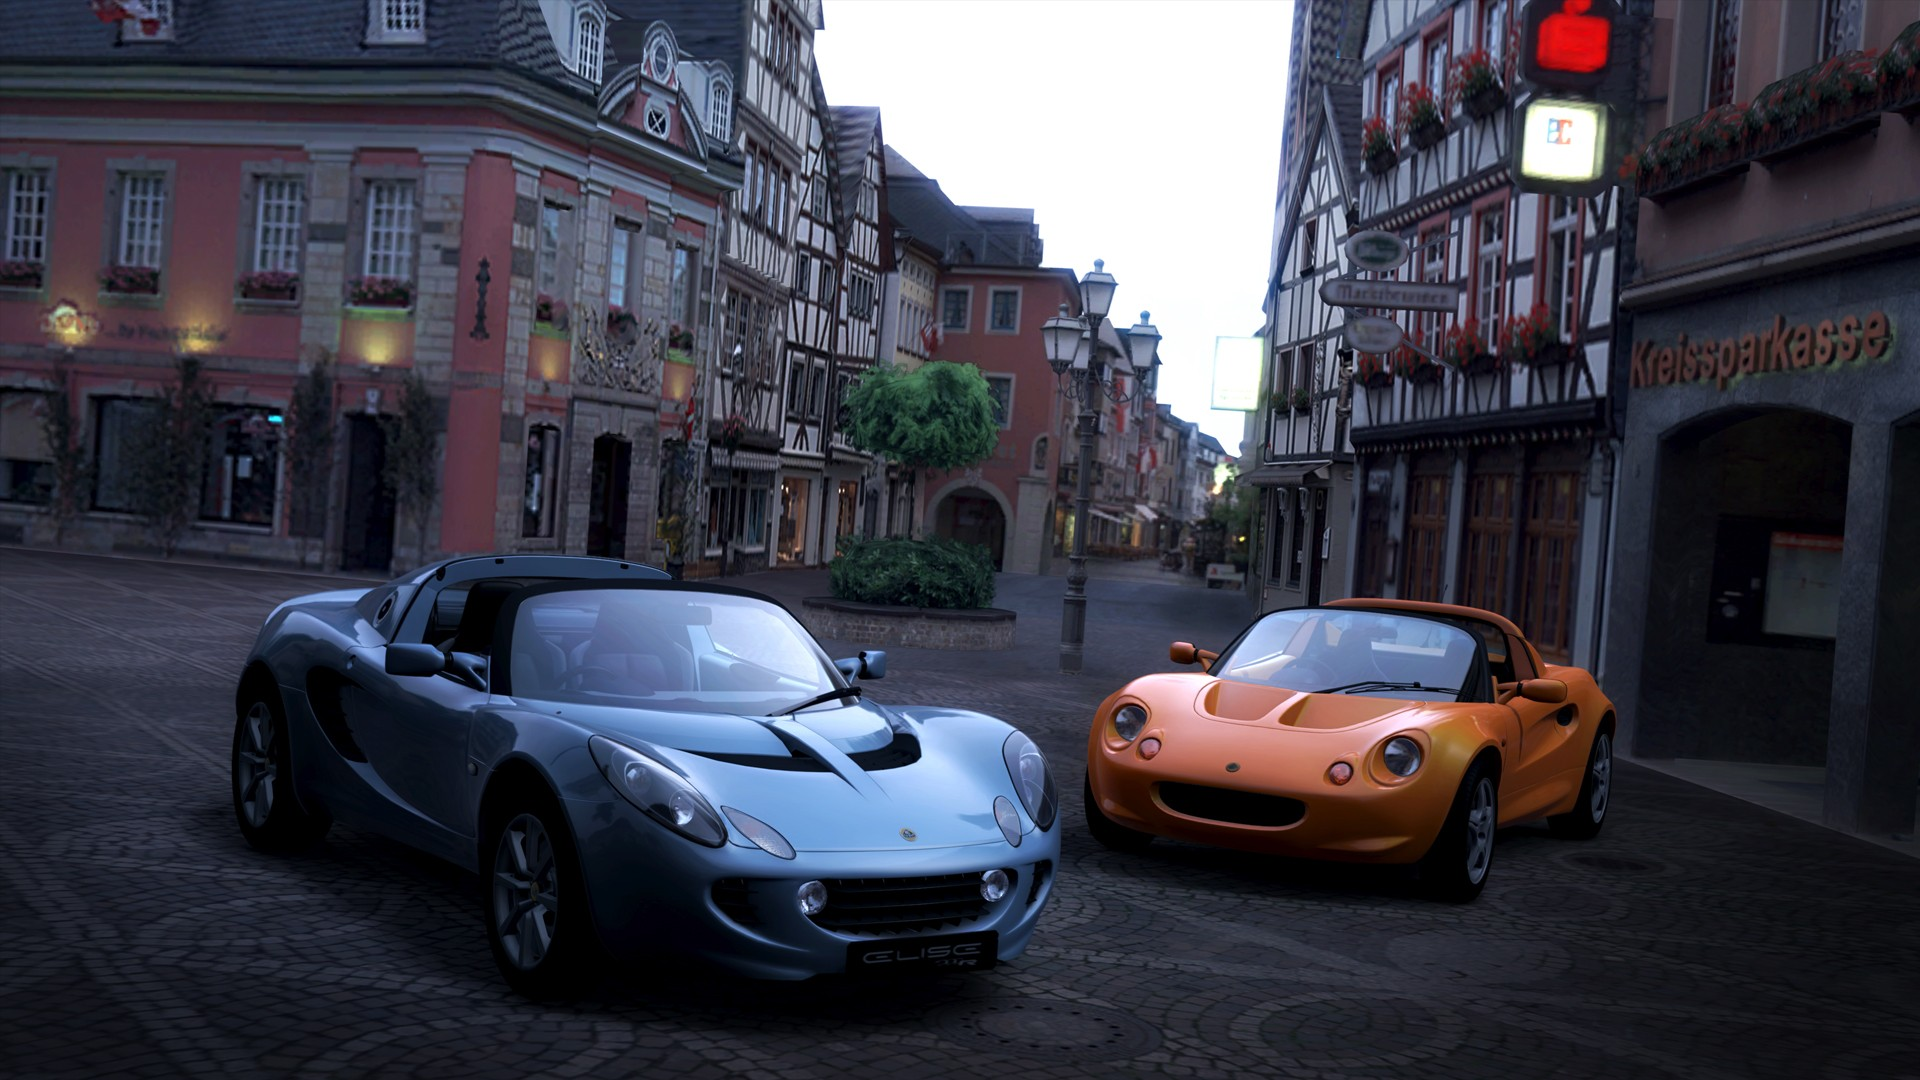 video games cars lotus elise gran turismo 5 playstation 3 lotus elise 111s wallpaper 1920x1080. Black Bedroom Furniture Sets. Home Design Ideas